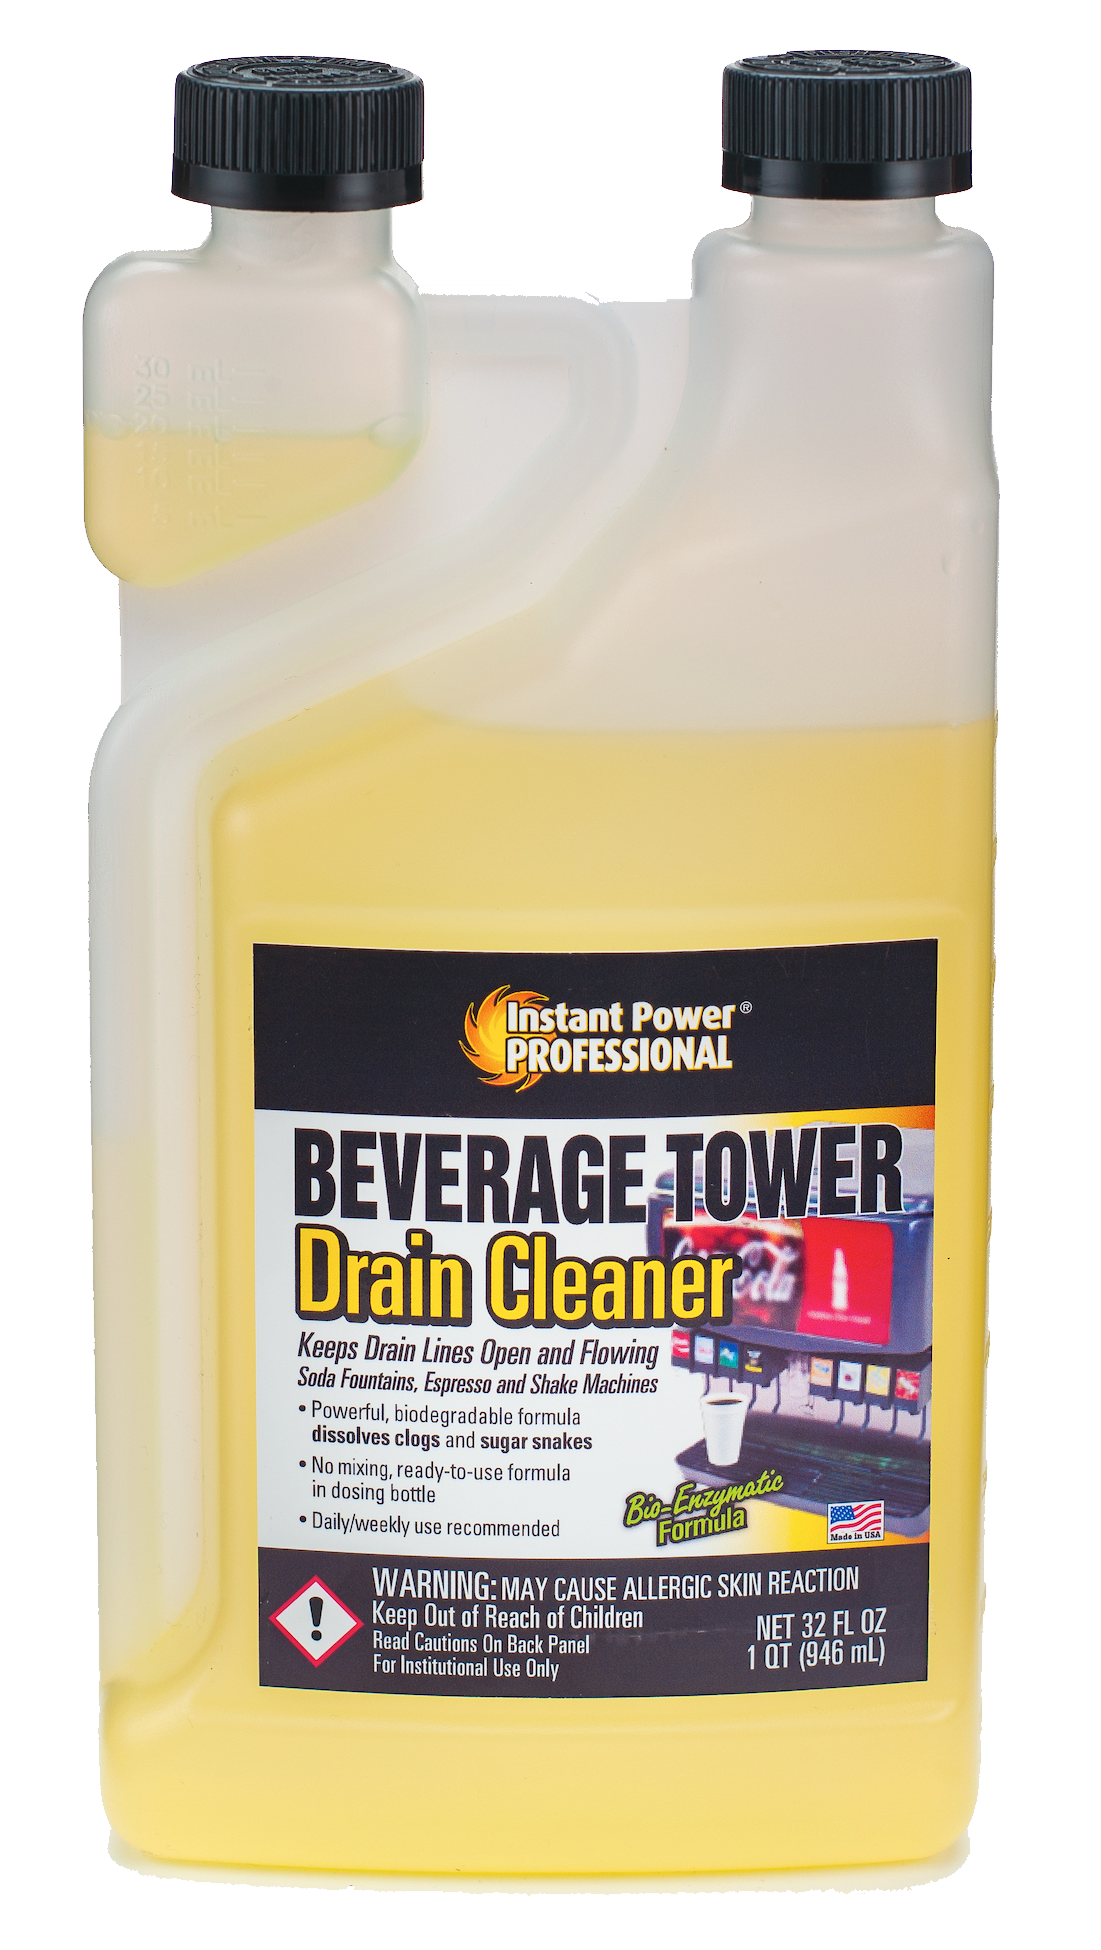 Beverage Tower Drain Cleaner Instant Power Professional